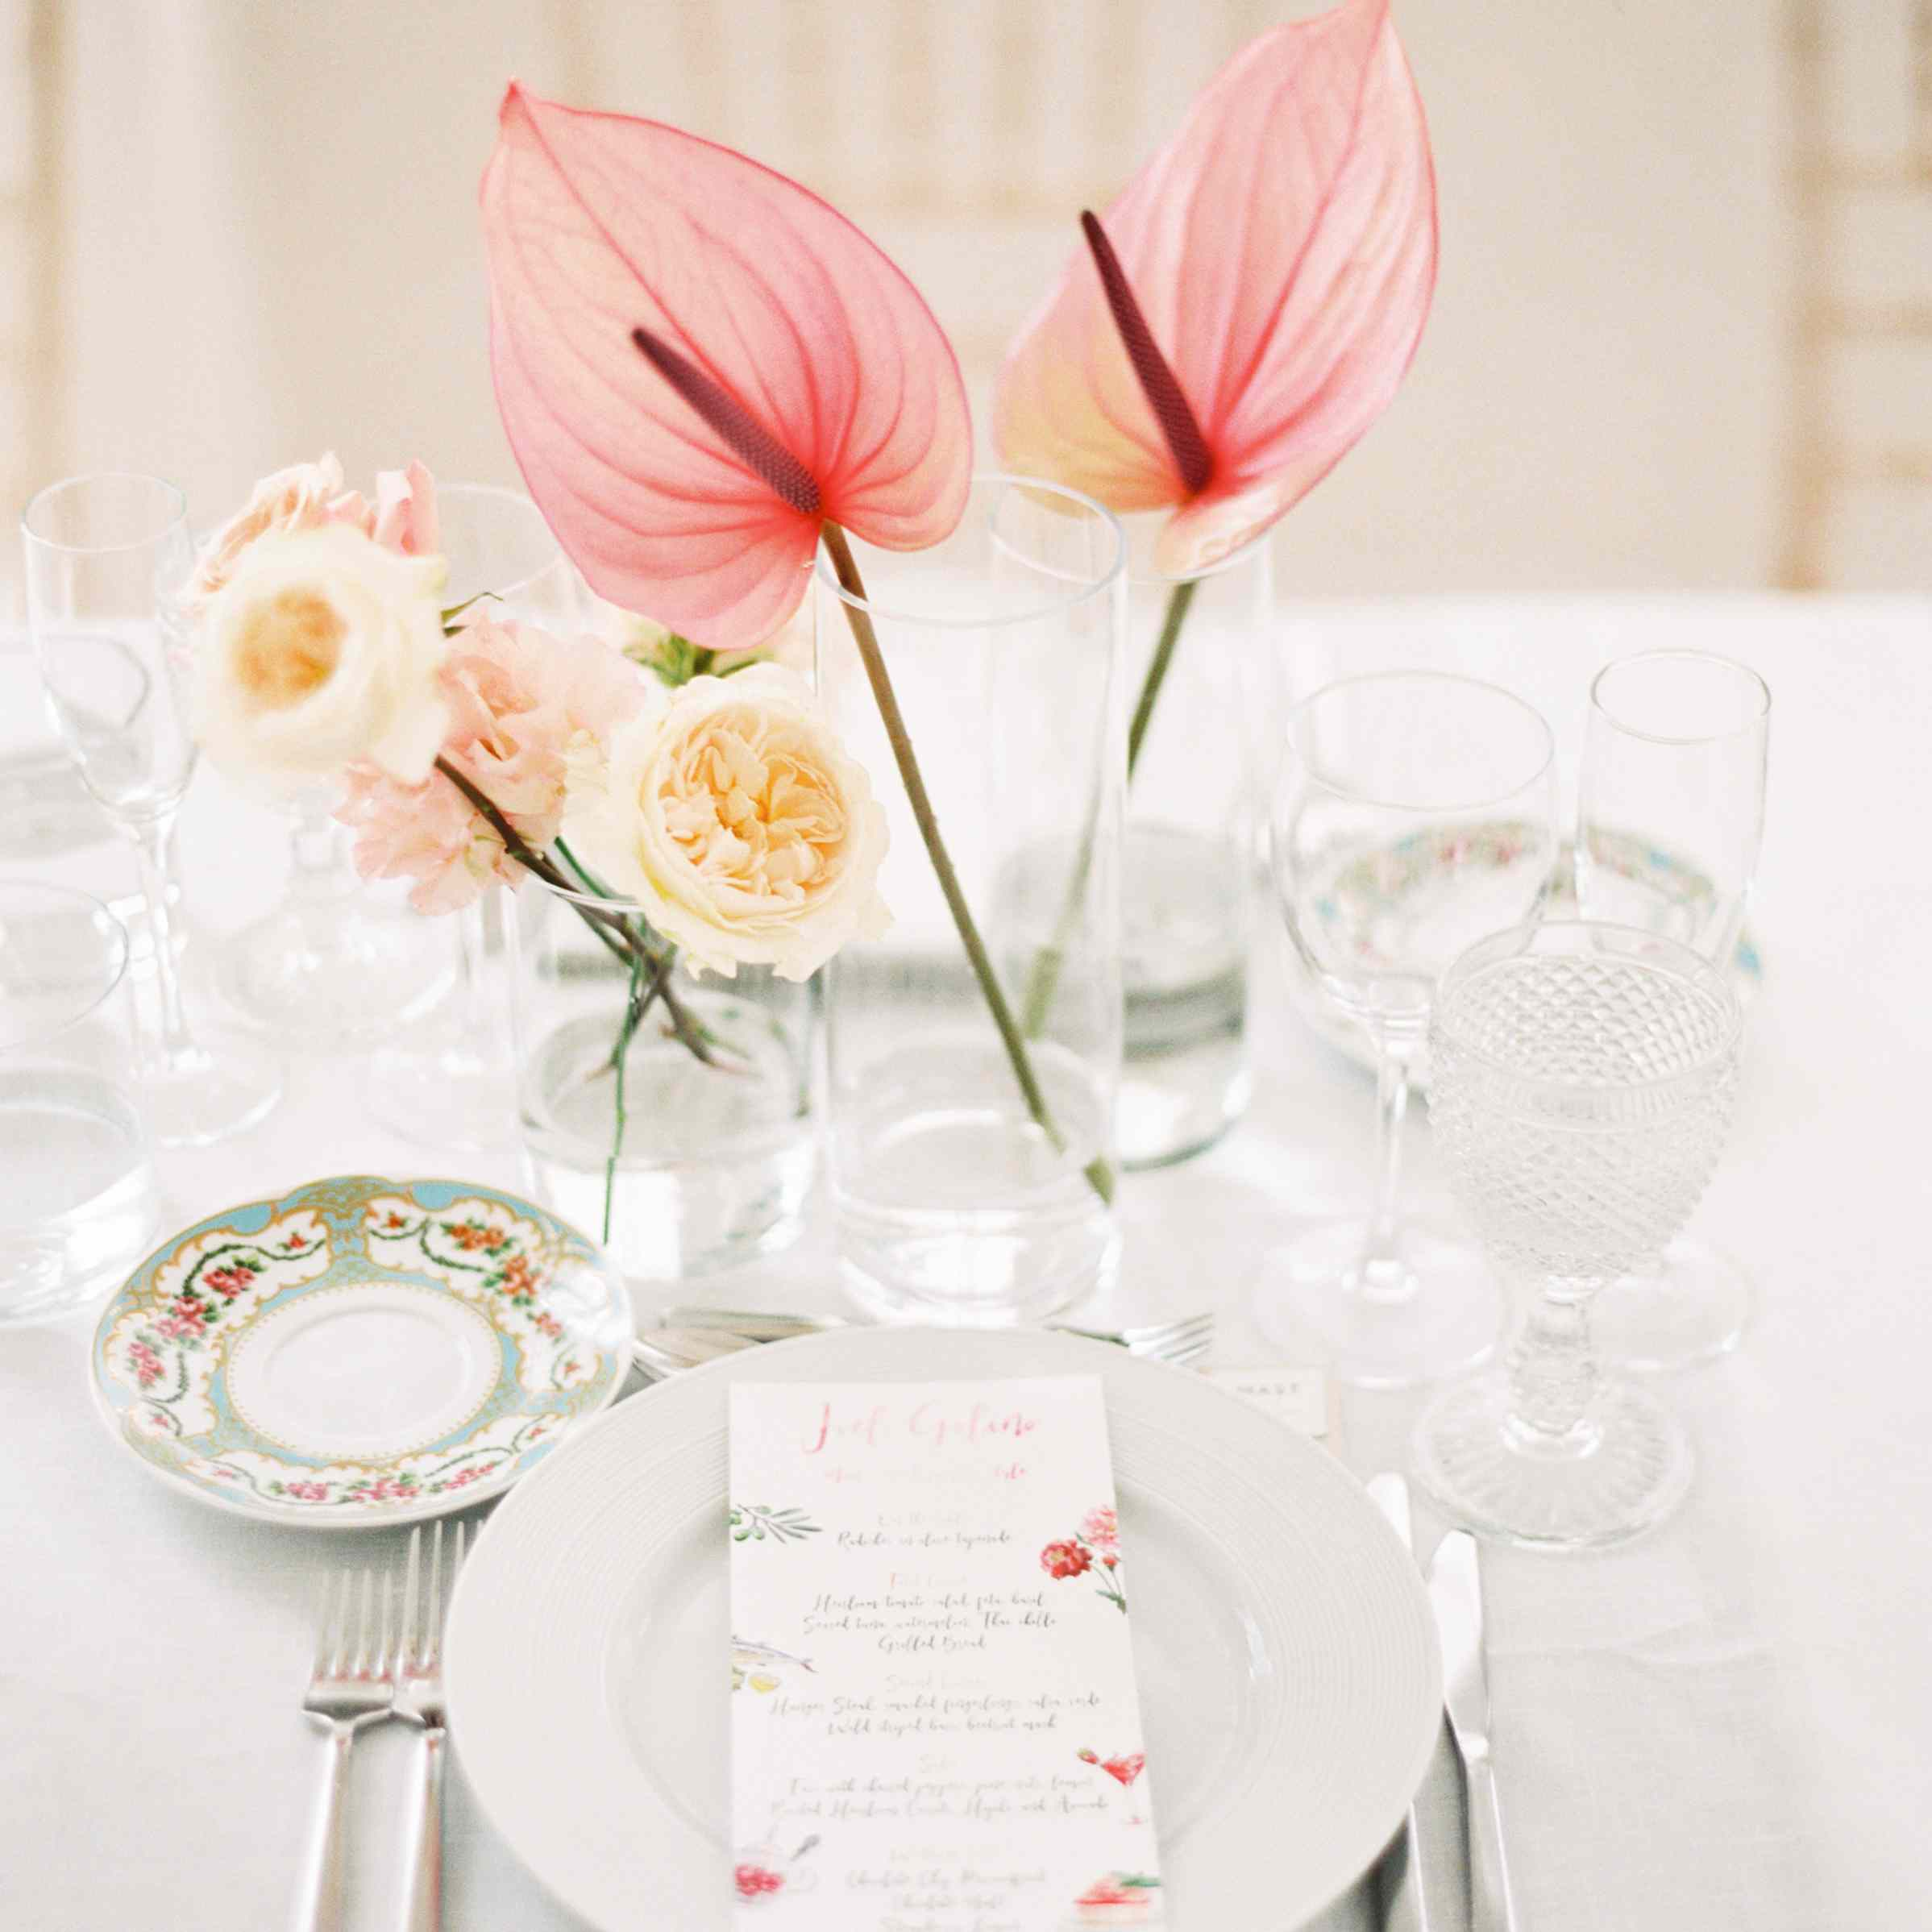 Groupings of Small Glass Vases